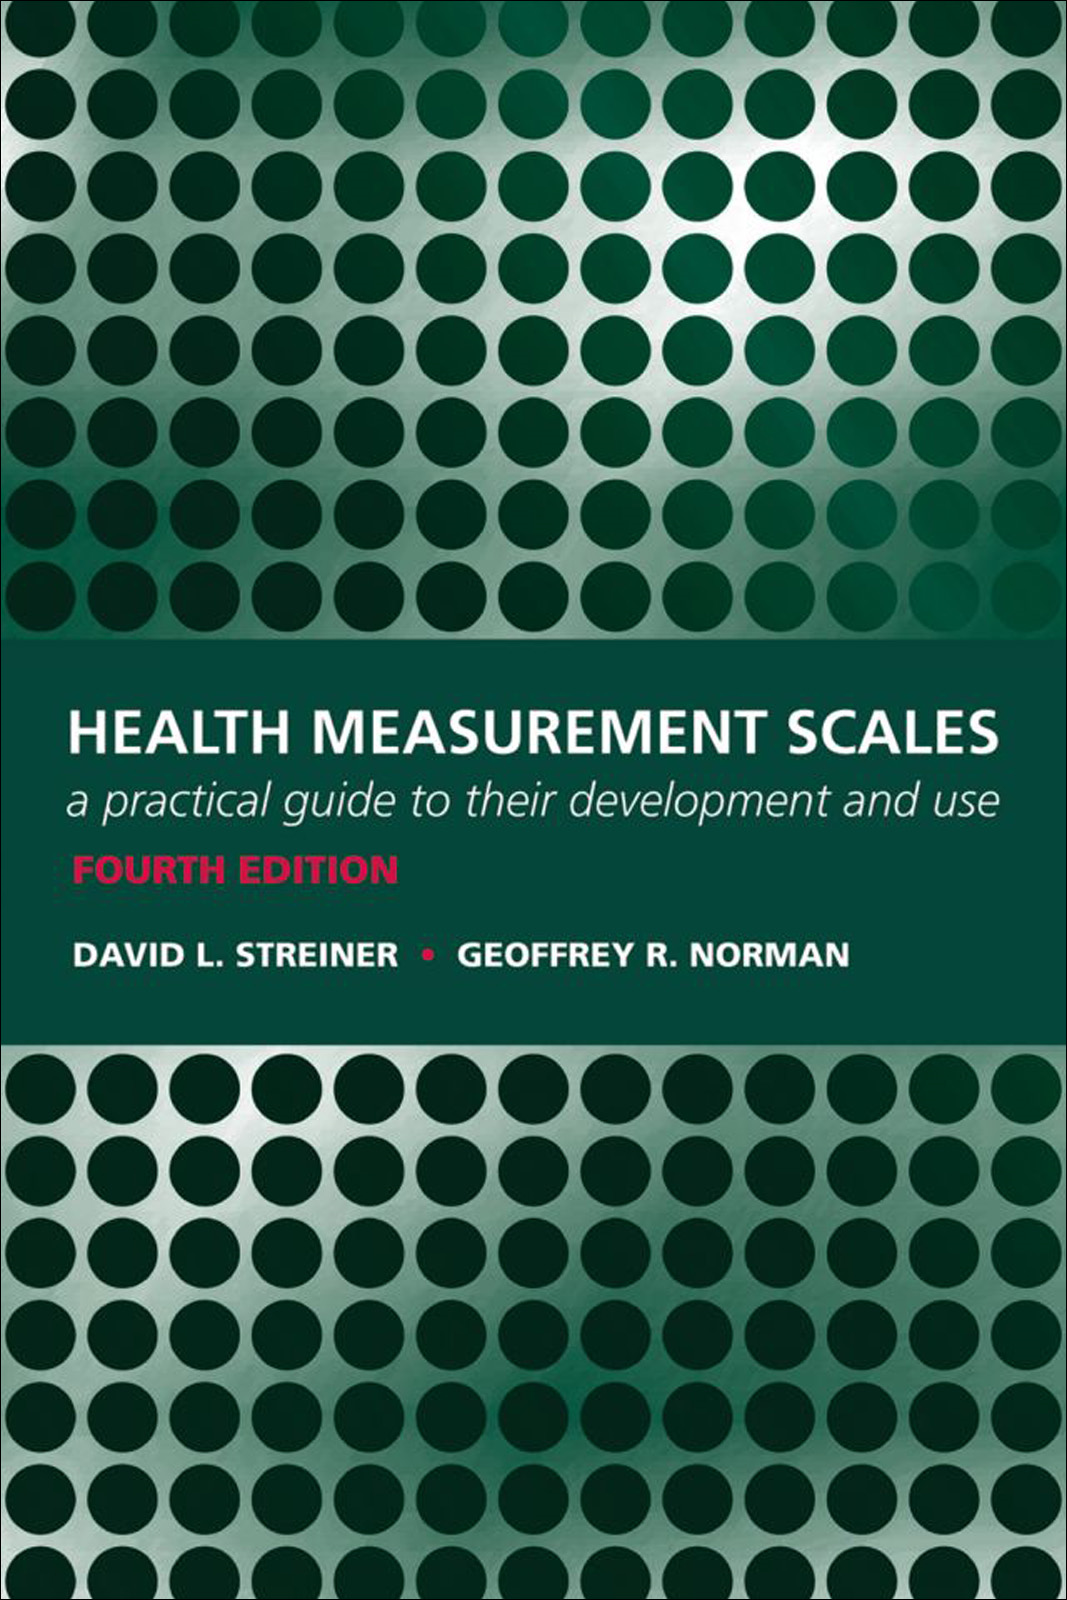 Health Measurement Scales:A practical guide to their development and use